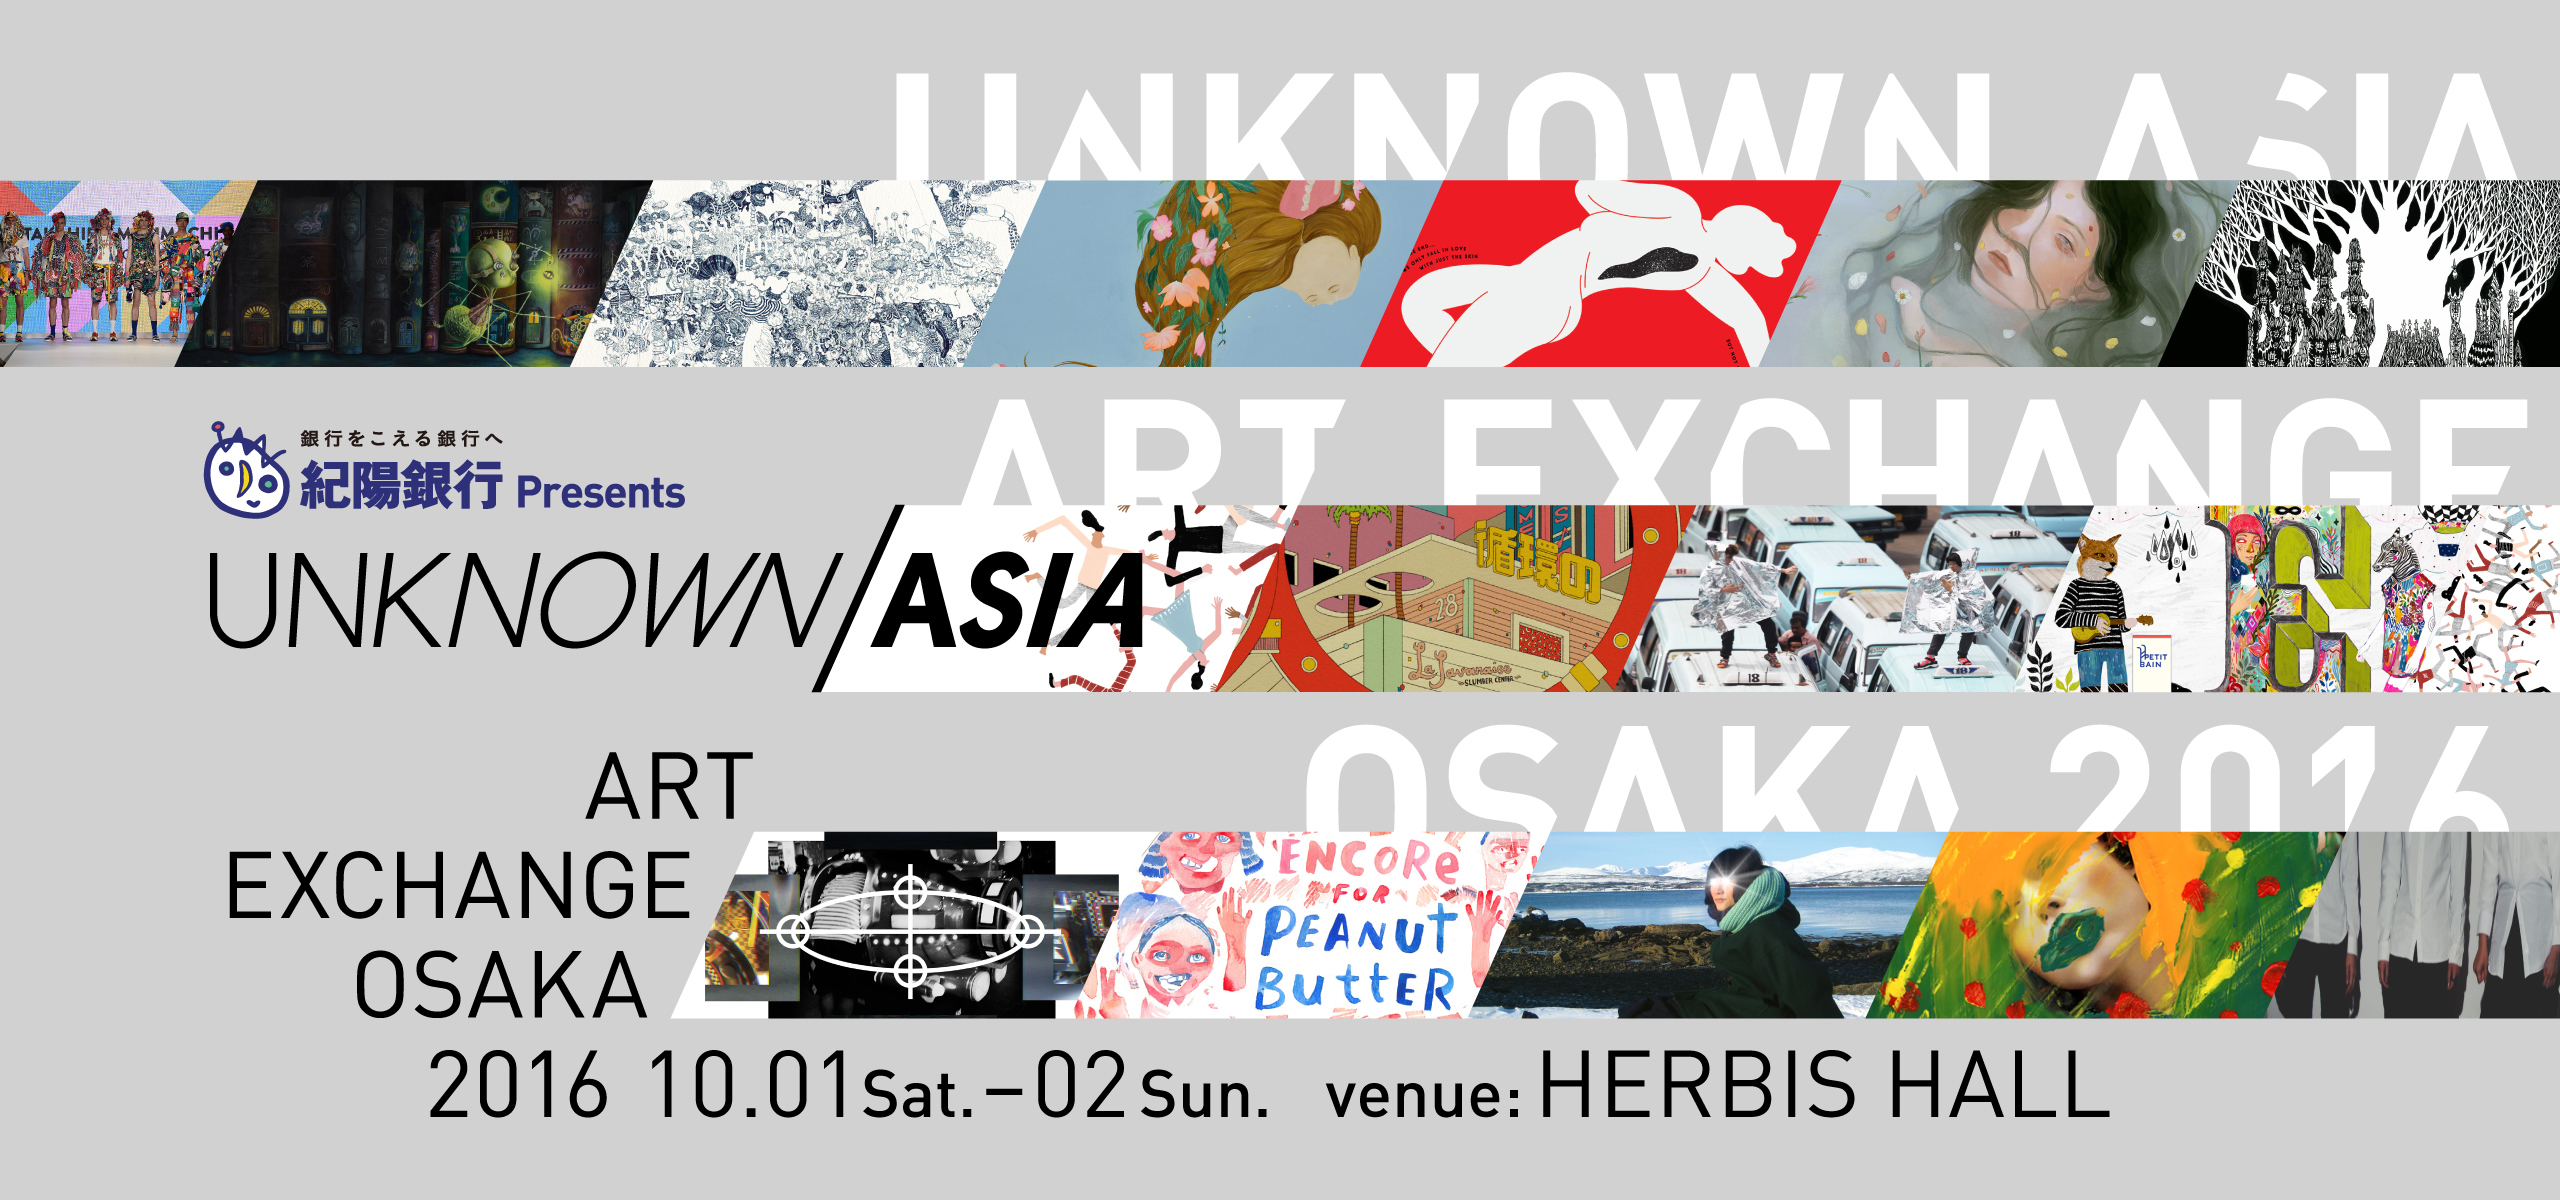 UNKNOWN ASIA ART EXCHANGE OSAKA 2016